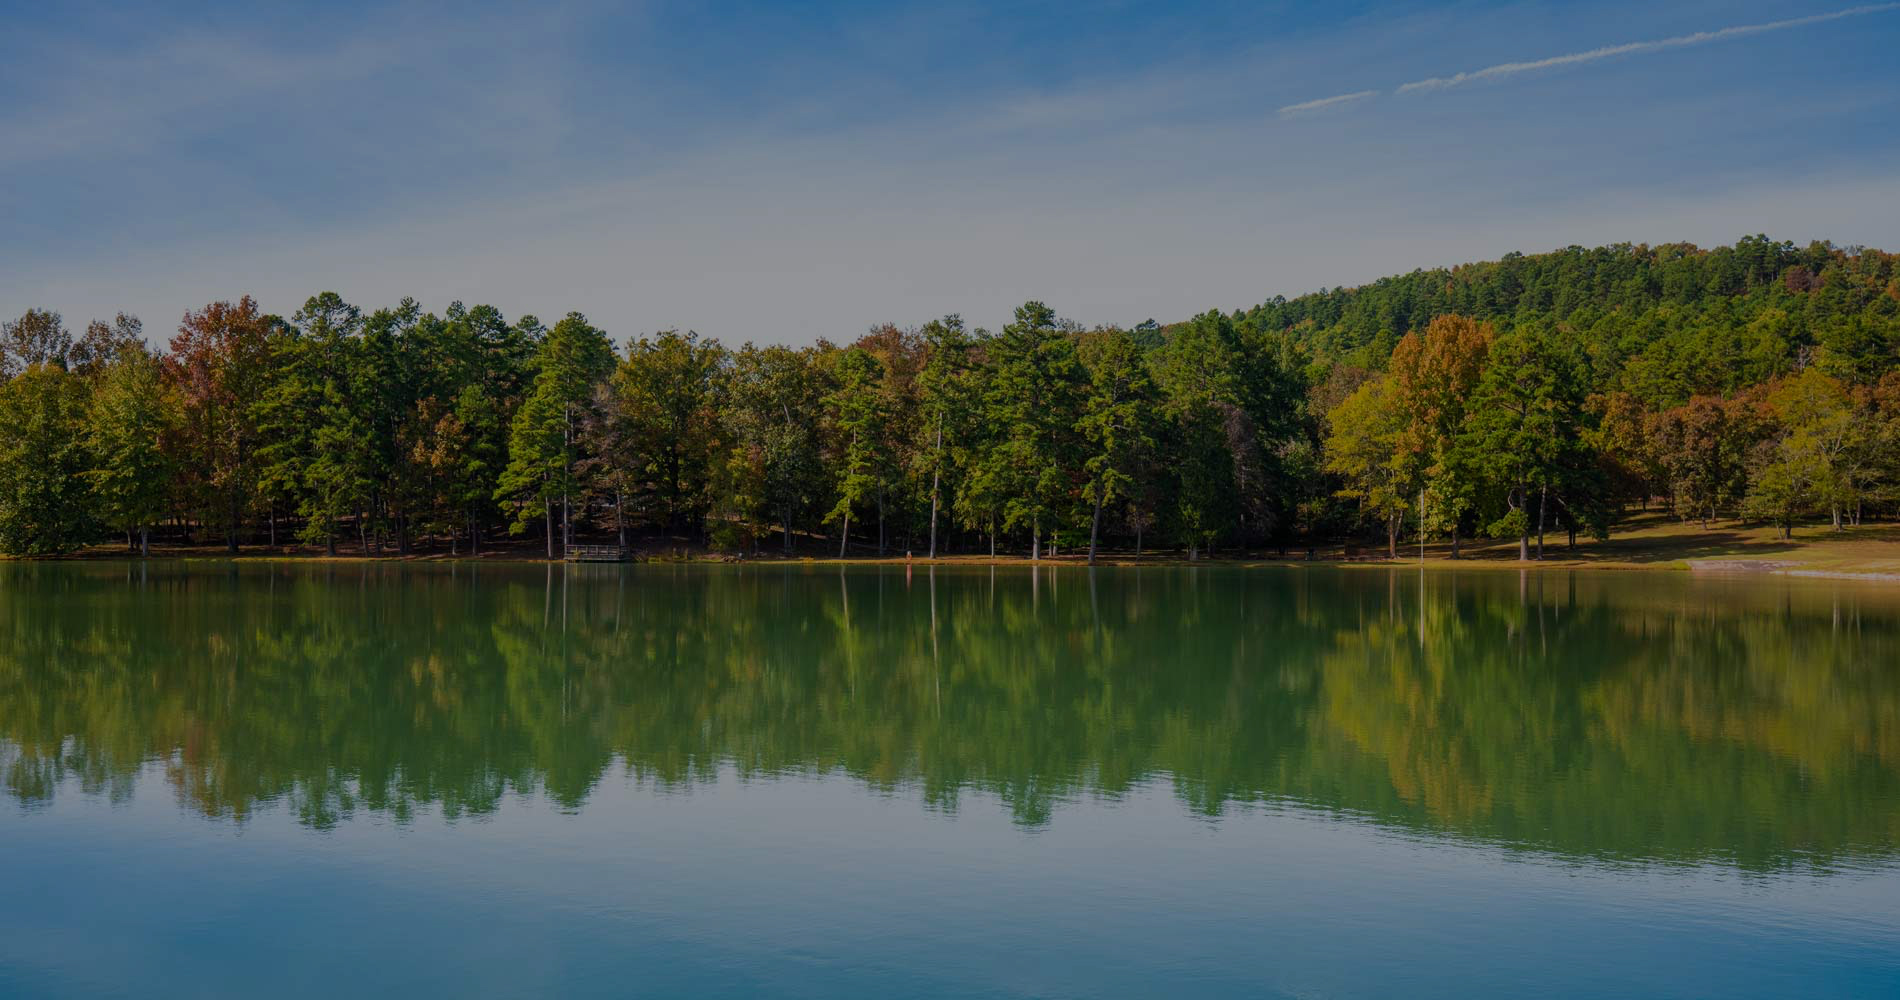 lake, forest on opposite shore, reflection in water